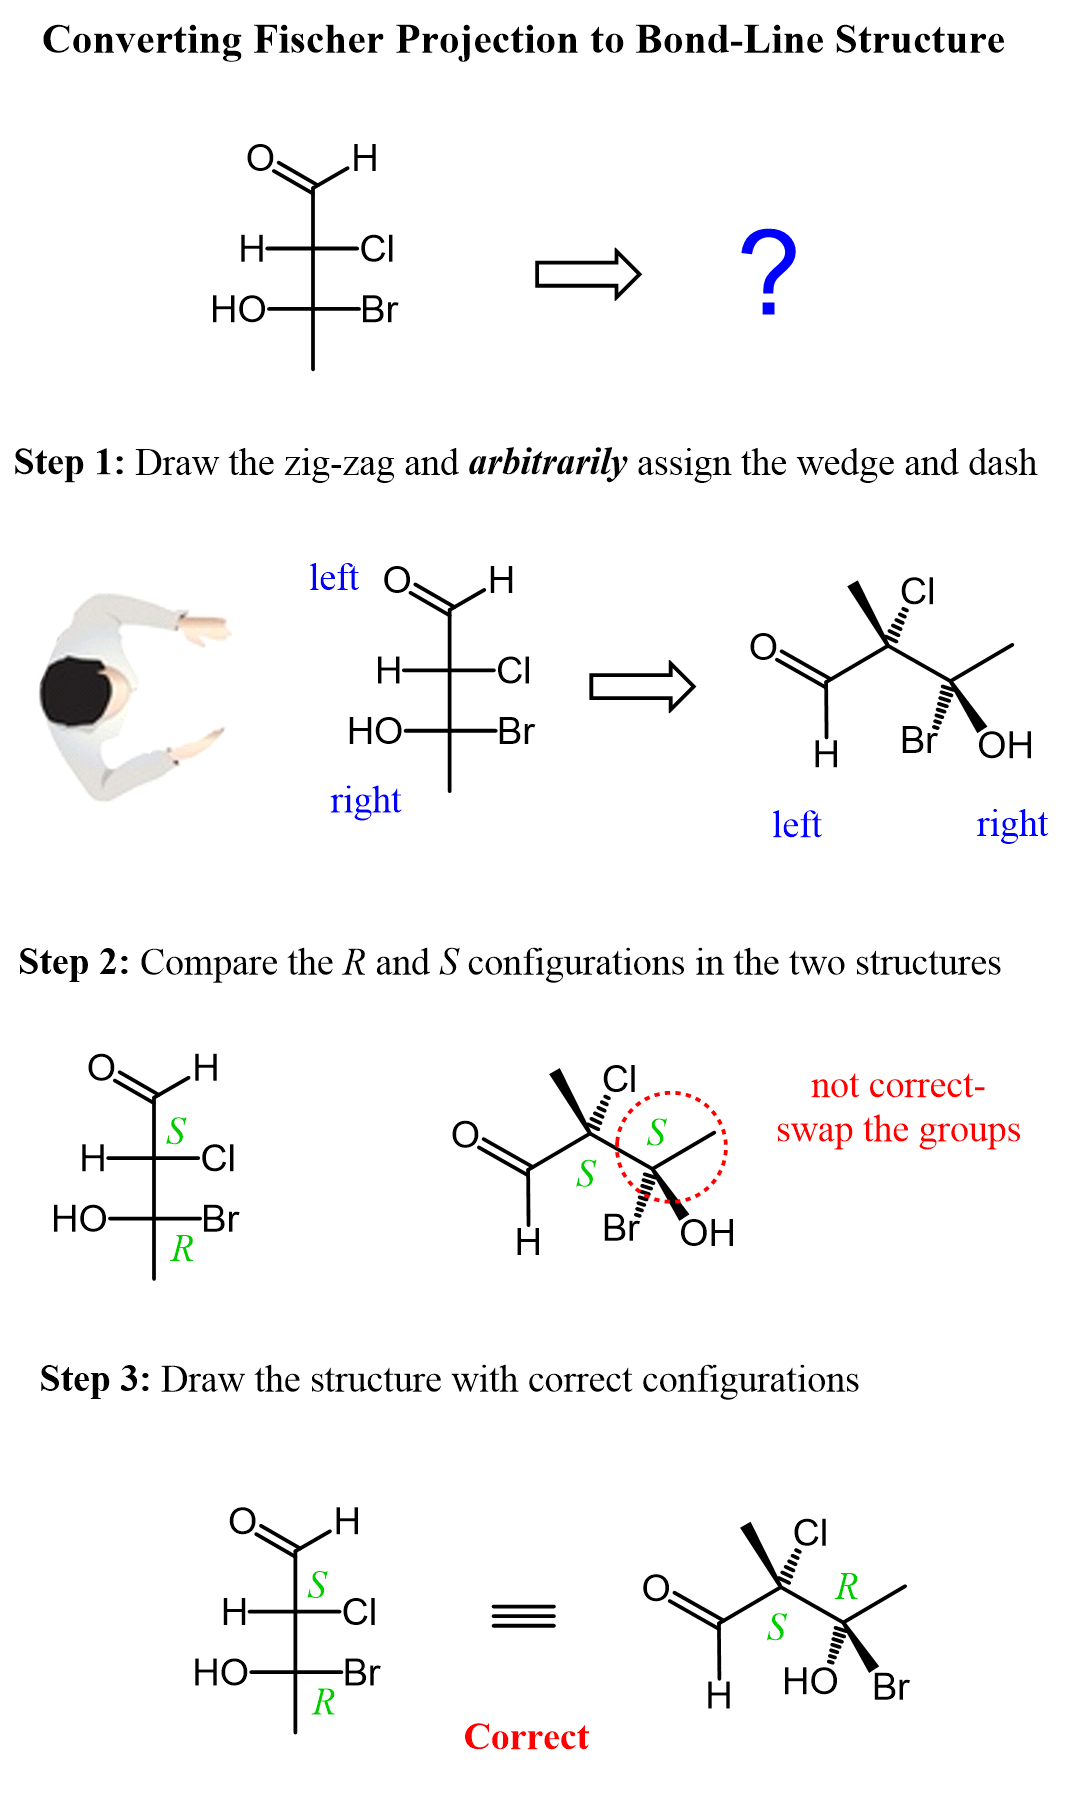 Converting Fischer Projection To Bond Line Structure Using The R And S And Swap Method In 2020 Organic Chemistry Organic Chemistry Study Study Chemistry